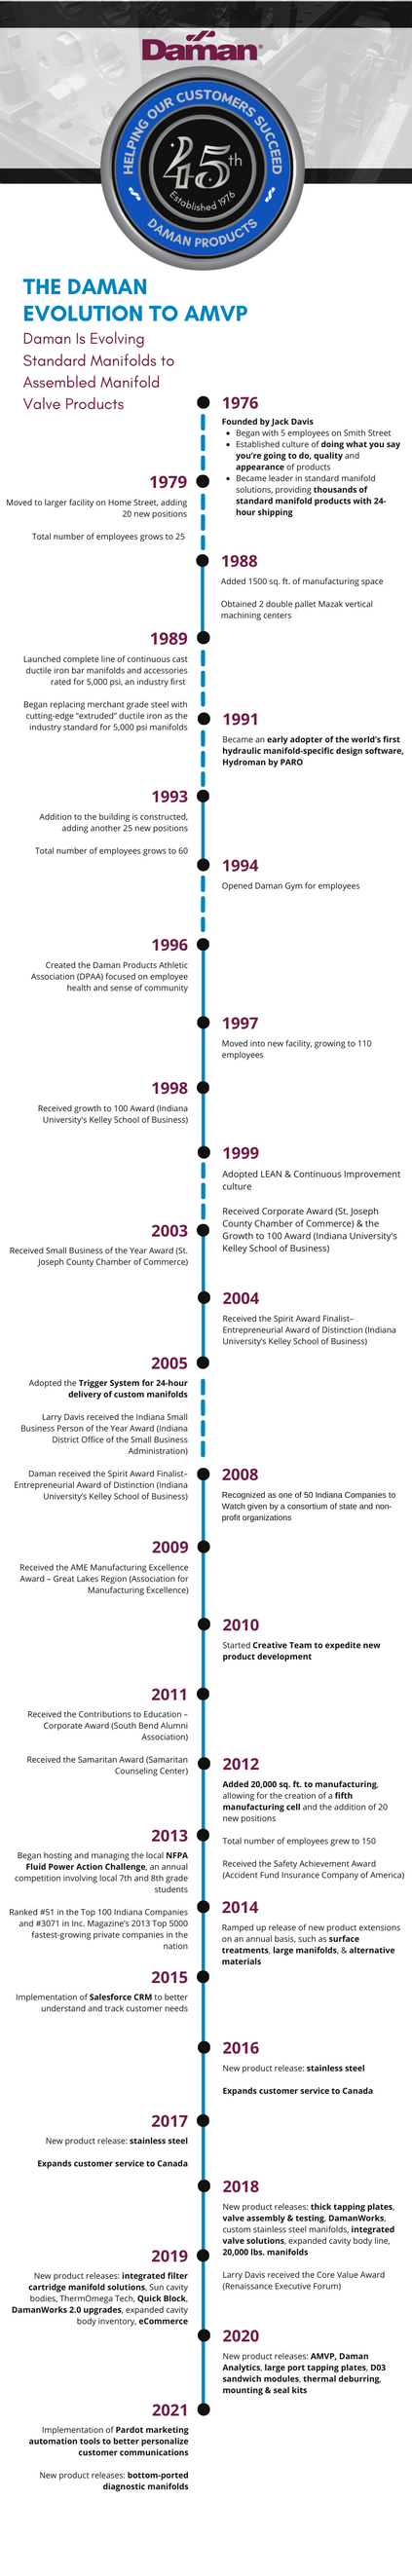 Daman 45th Anniversary Timeline (3).png